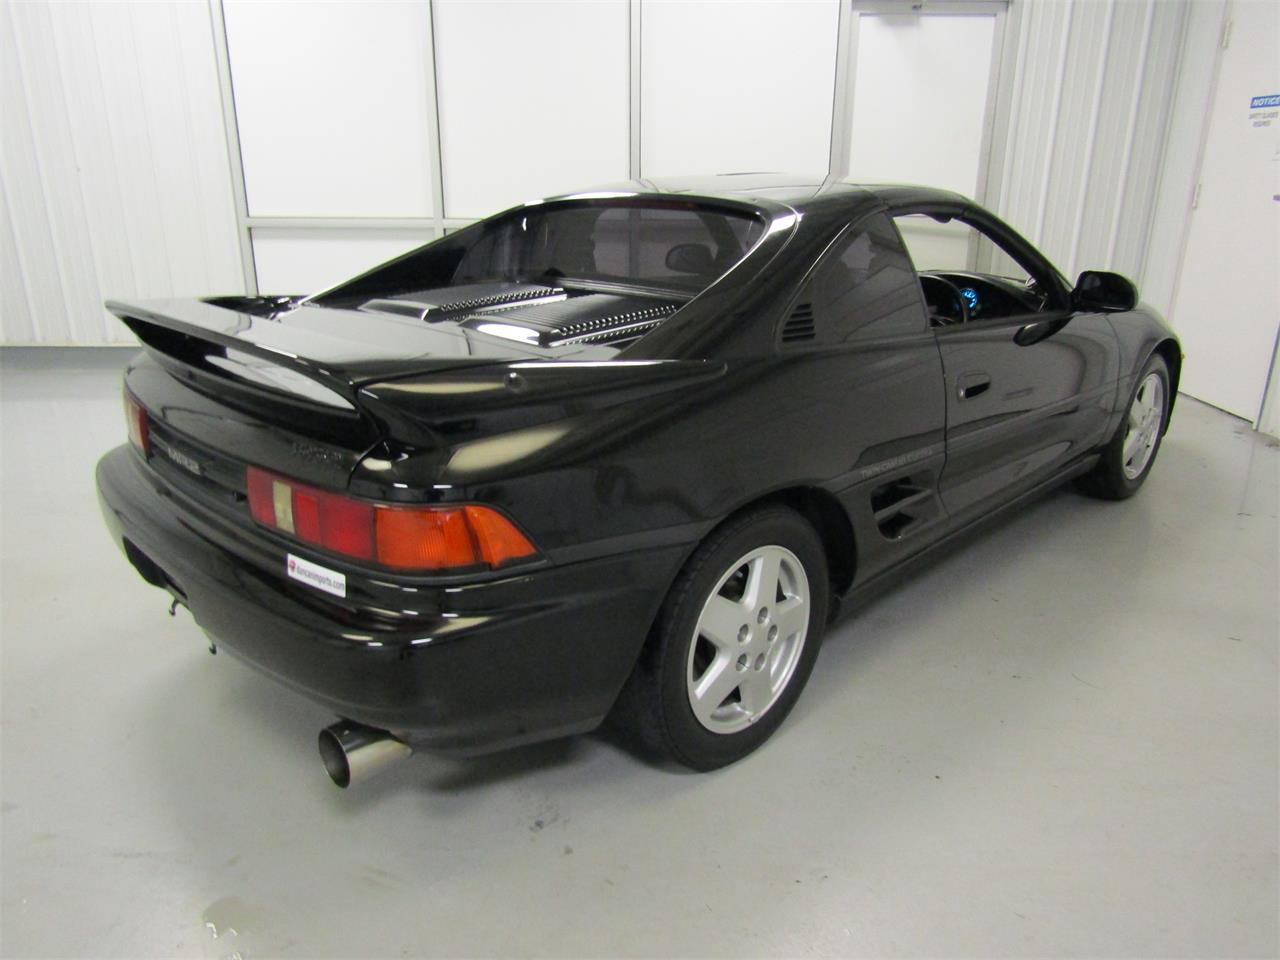 Large Picture of '92 MR2 located in Christiansburg Virginia - $16,991.00 Offered by Duncan Imports & Classic Cars - OLED